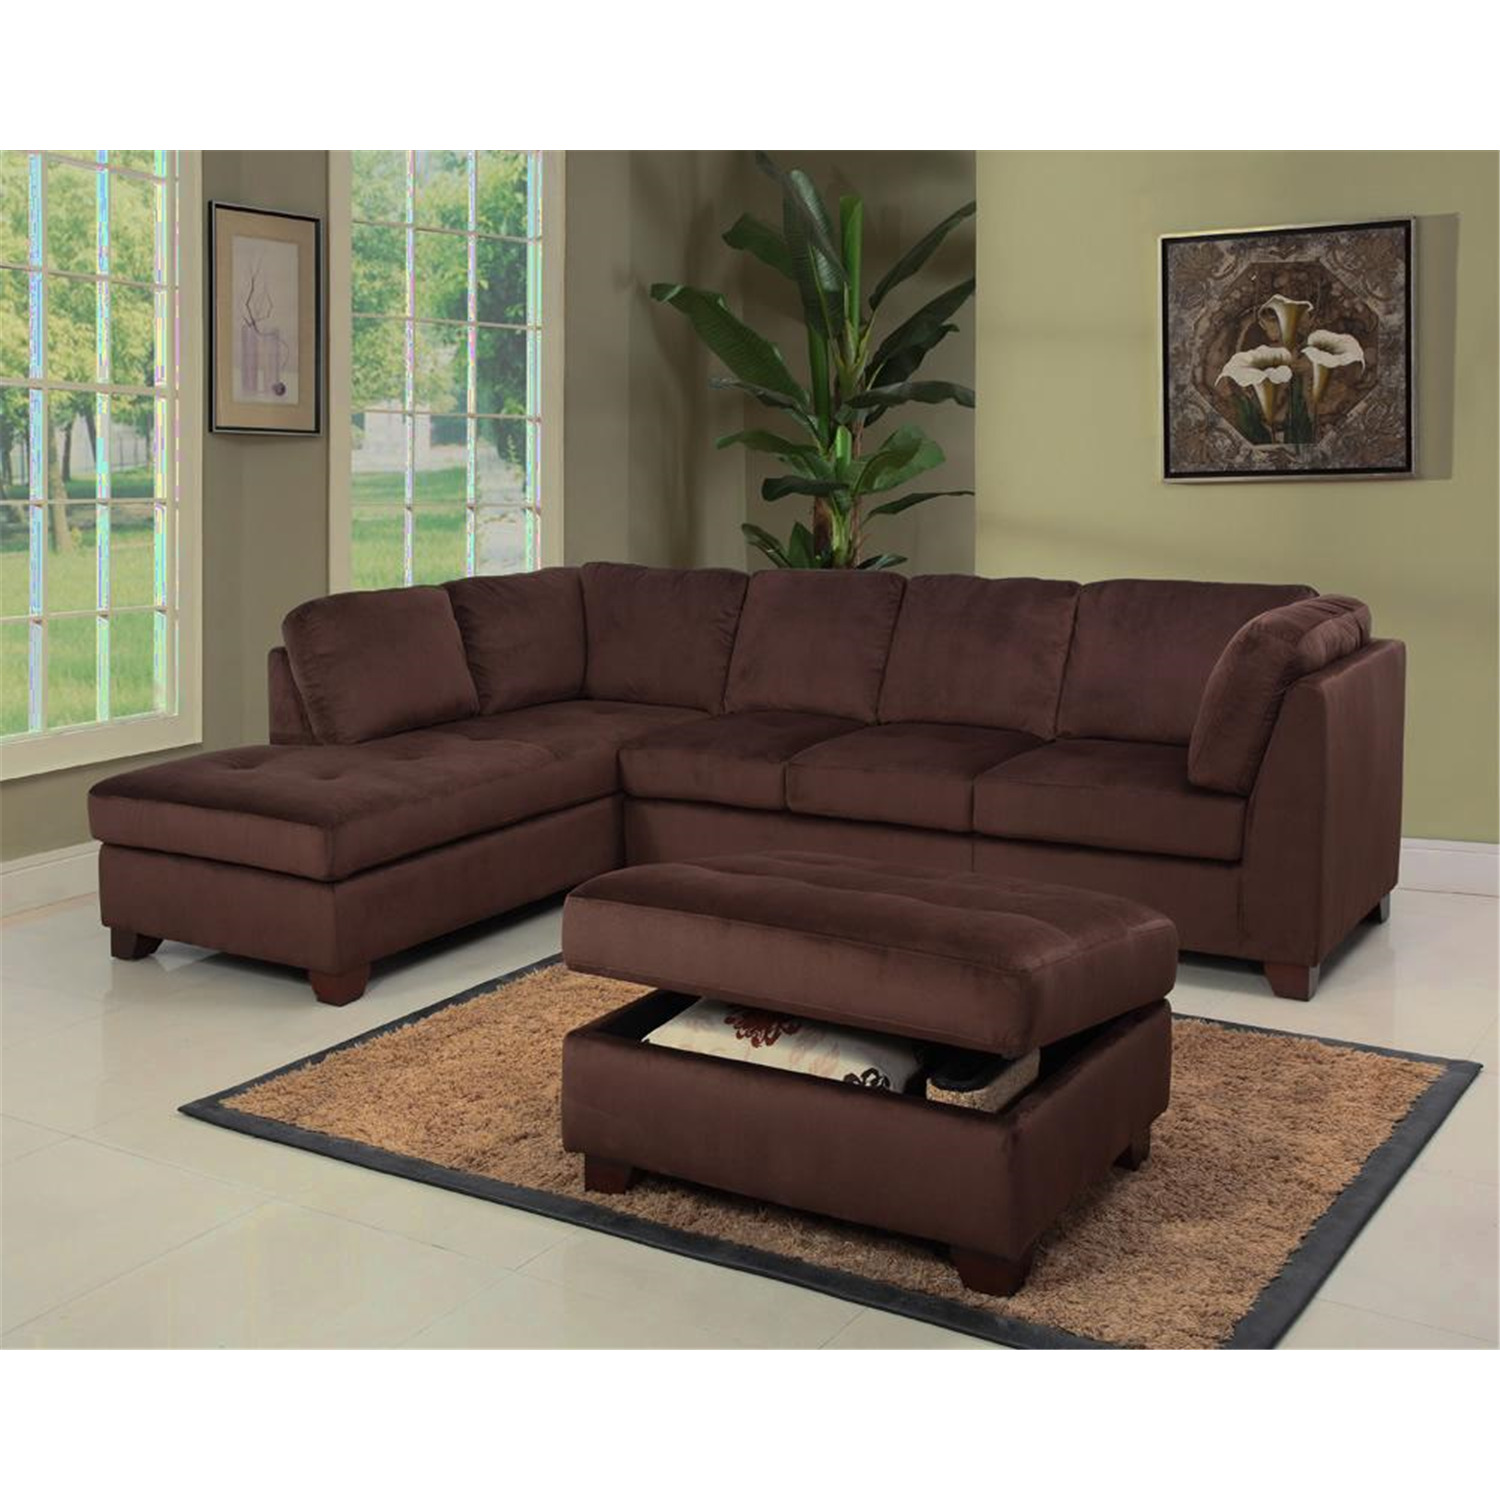 Abbyson living microsuede sectional sofa and storage for Suede furniture